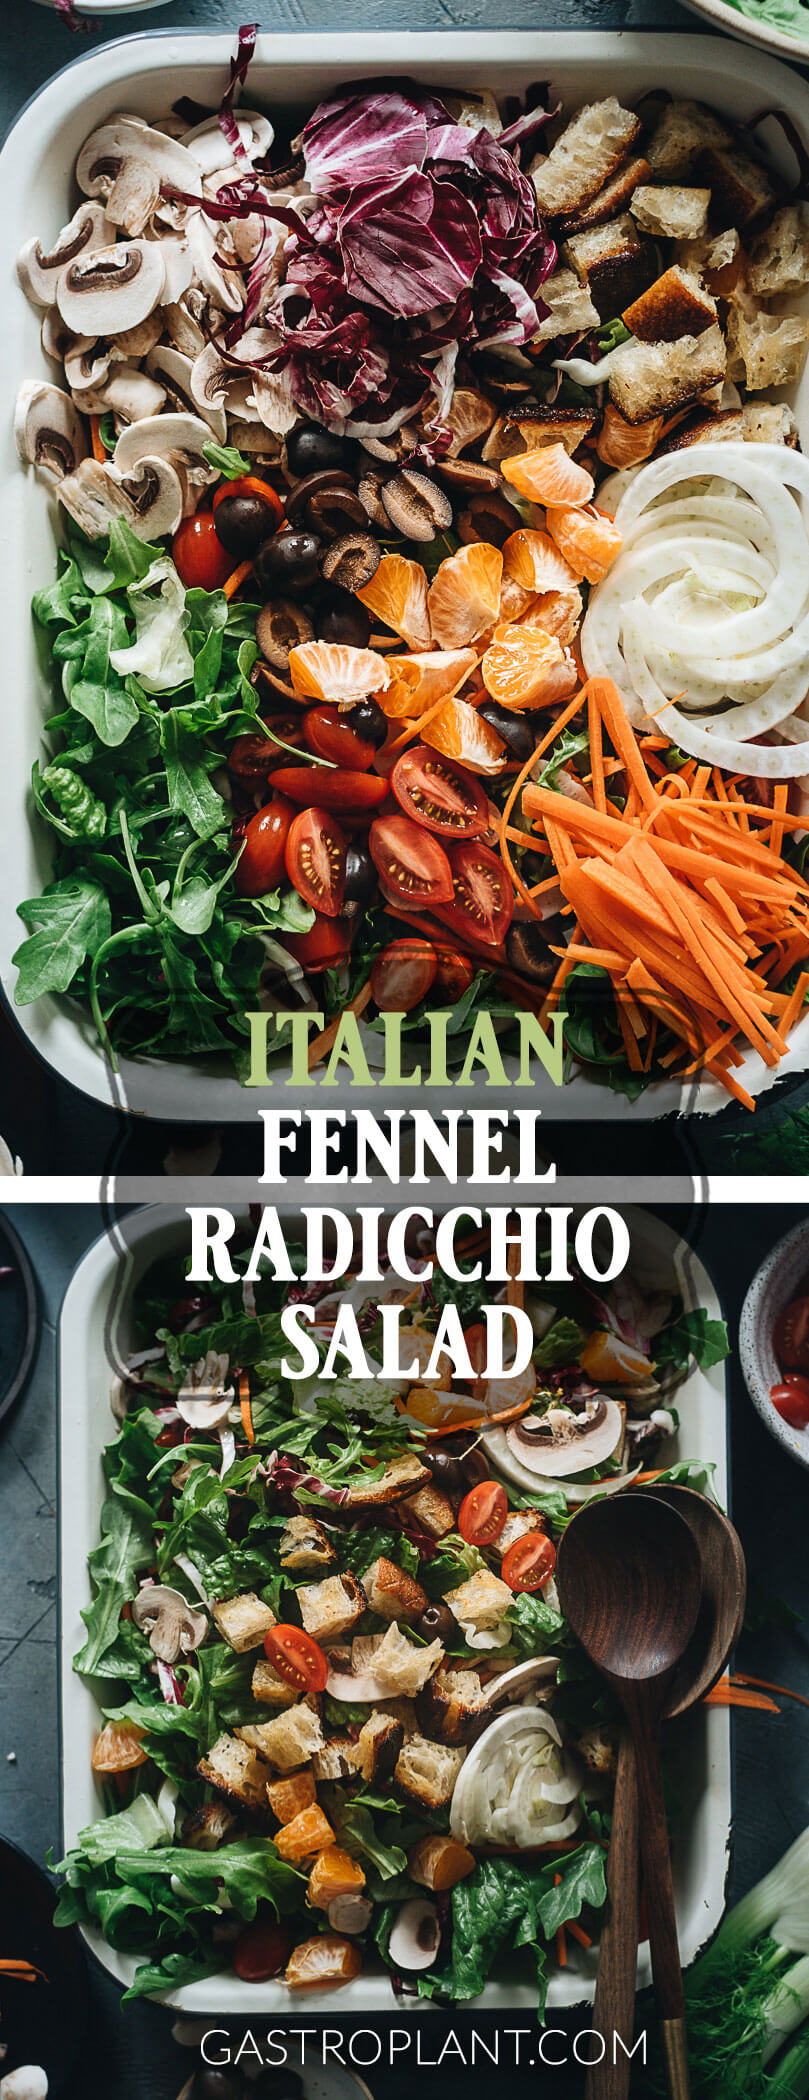 Easy Healthy Italian Fennel and Radicchio Salad Collage